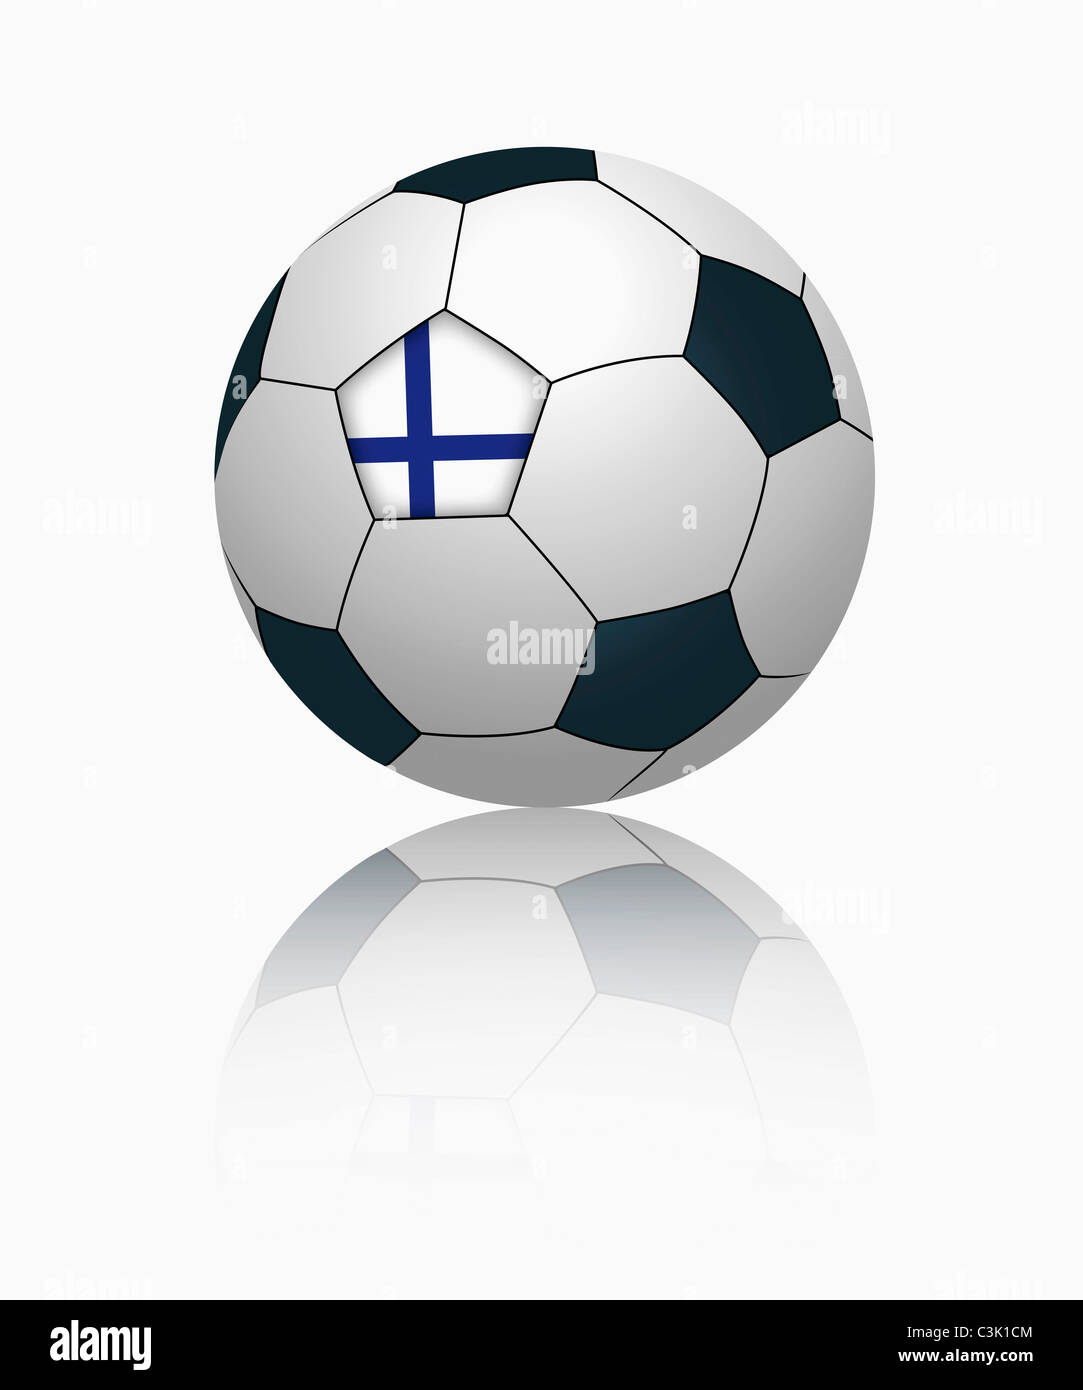 Finnish flag on football, close up Stock Photo